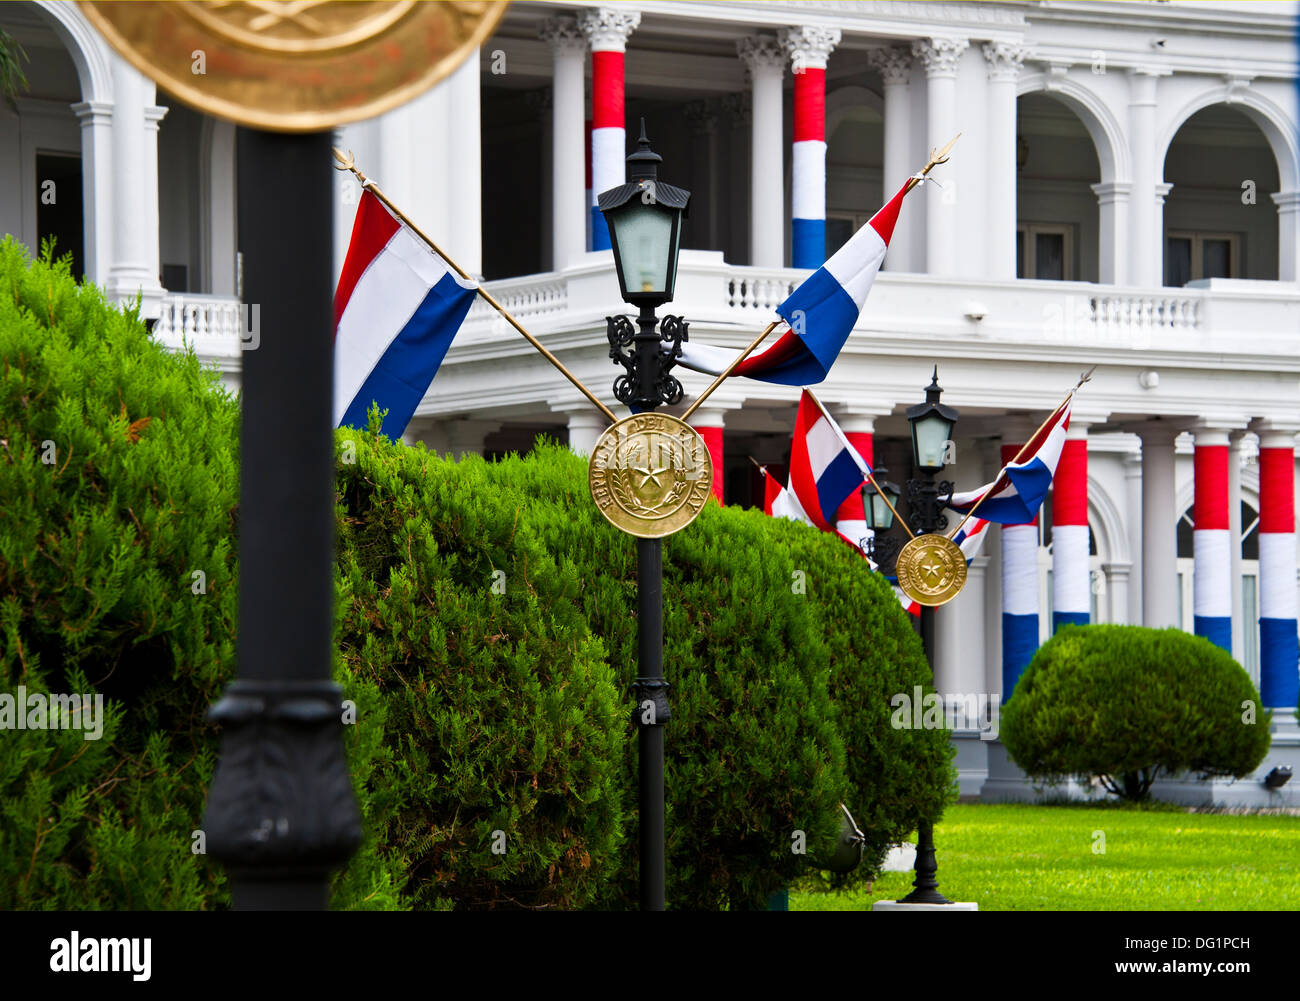 Palace of the President, Asuncion, Paraguay - Stock Image